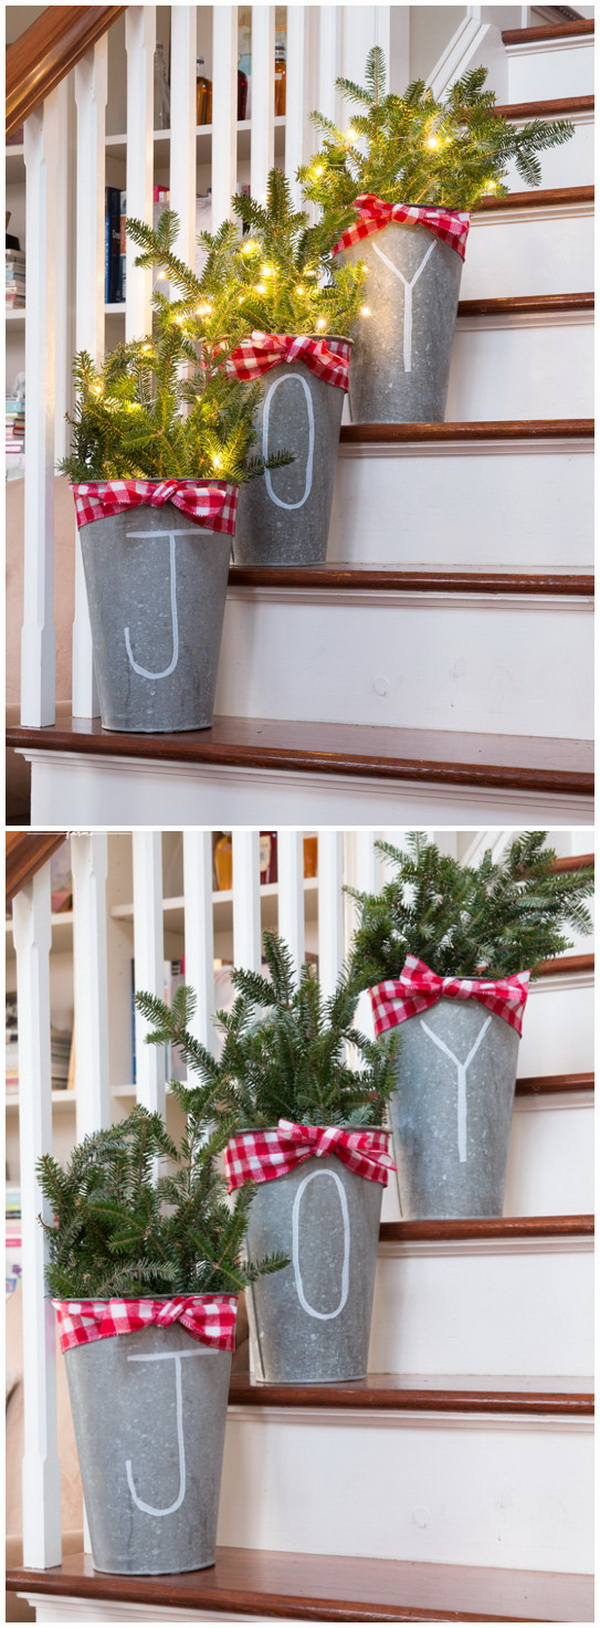 Chalk Pen Galvanized Buckets. This JOY galvanized buckets is so simple and yet so pretty and festive. Love Love Love!!!